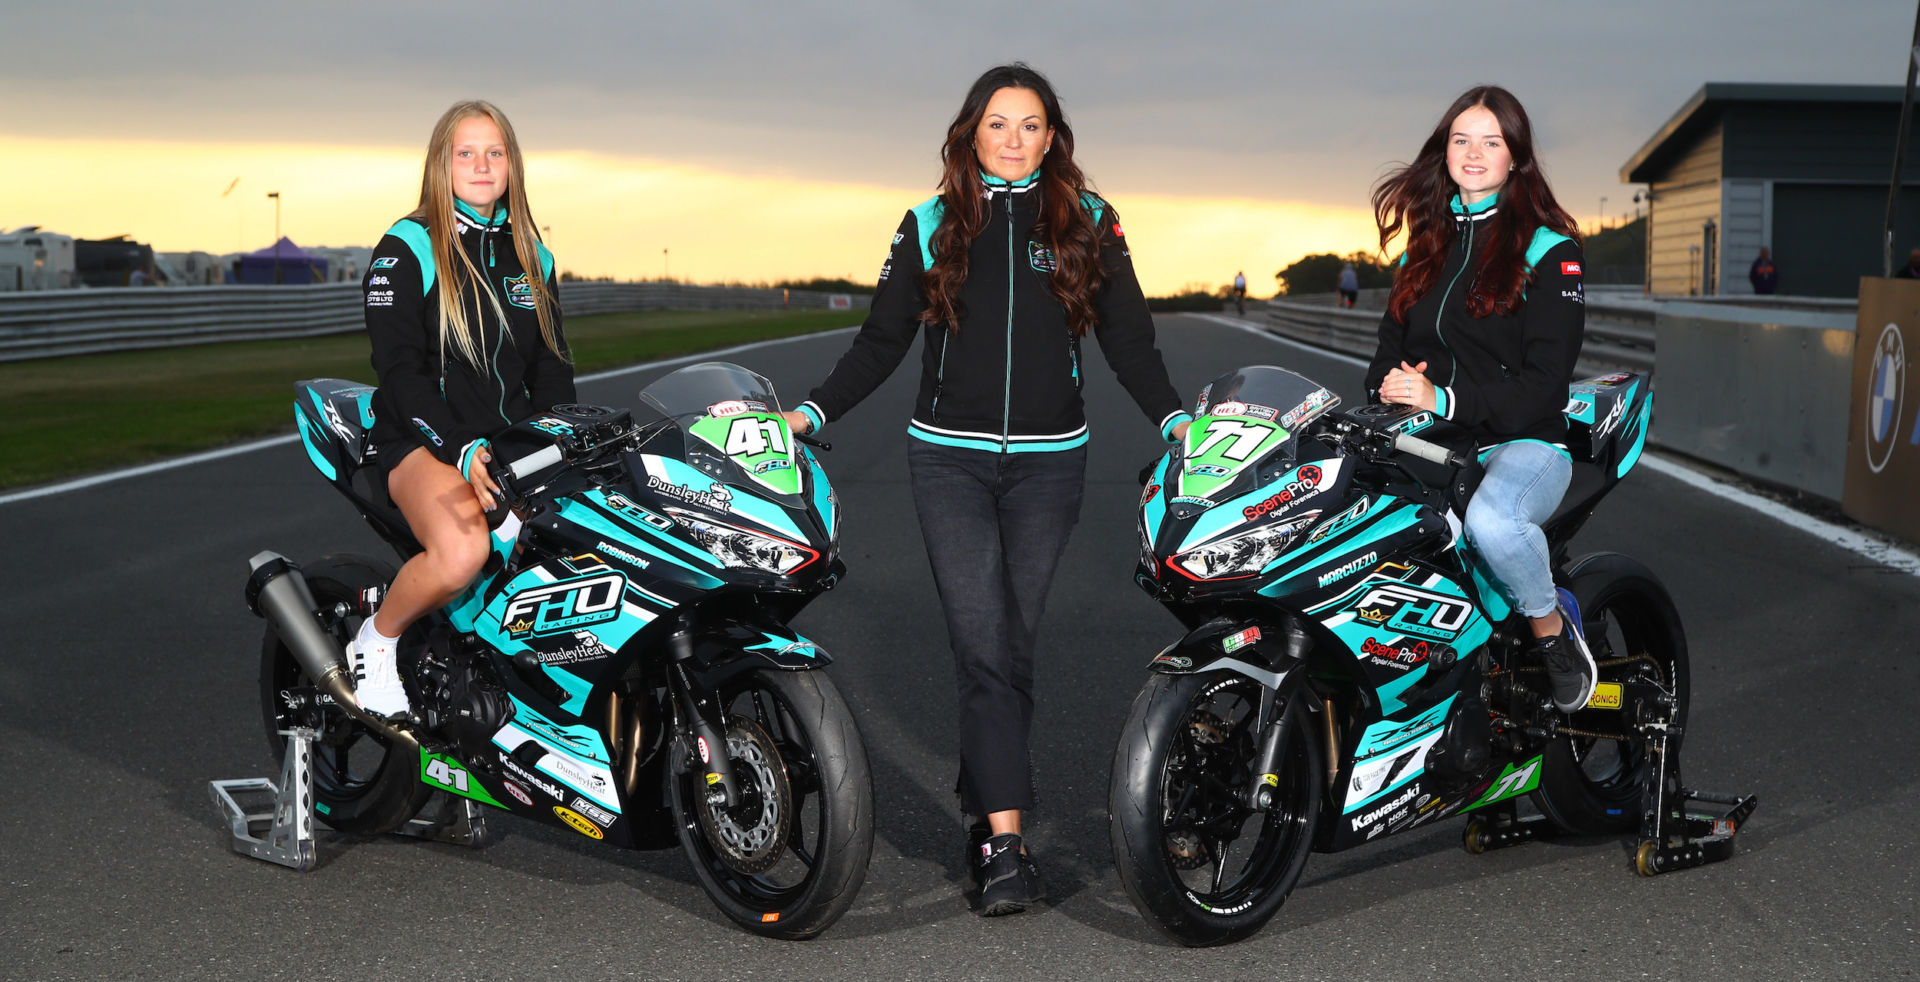 FHO Racing Team Owner Faye Ho (center) with Scarlett Robinson (left) and Charlotte Marcuzzo (right). Photo courtesy FHO Racing.